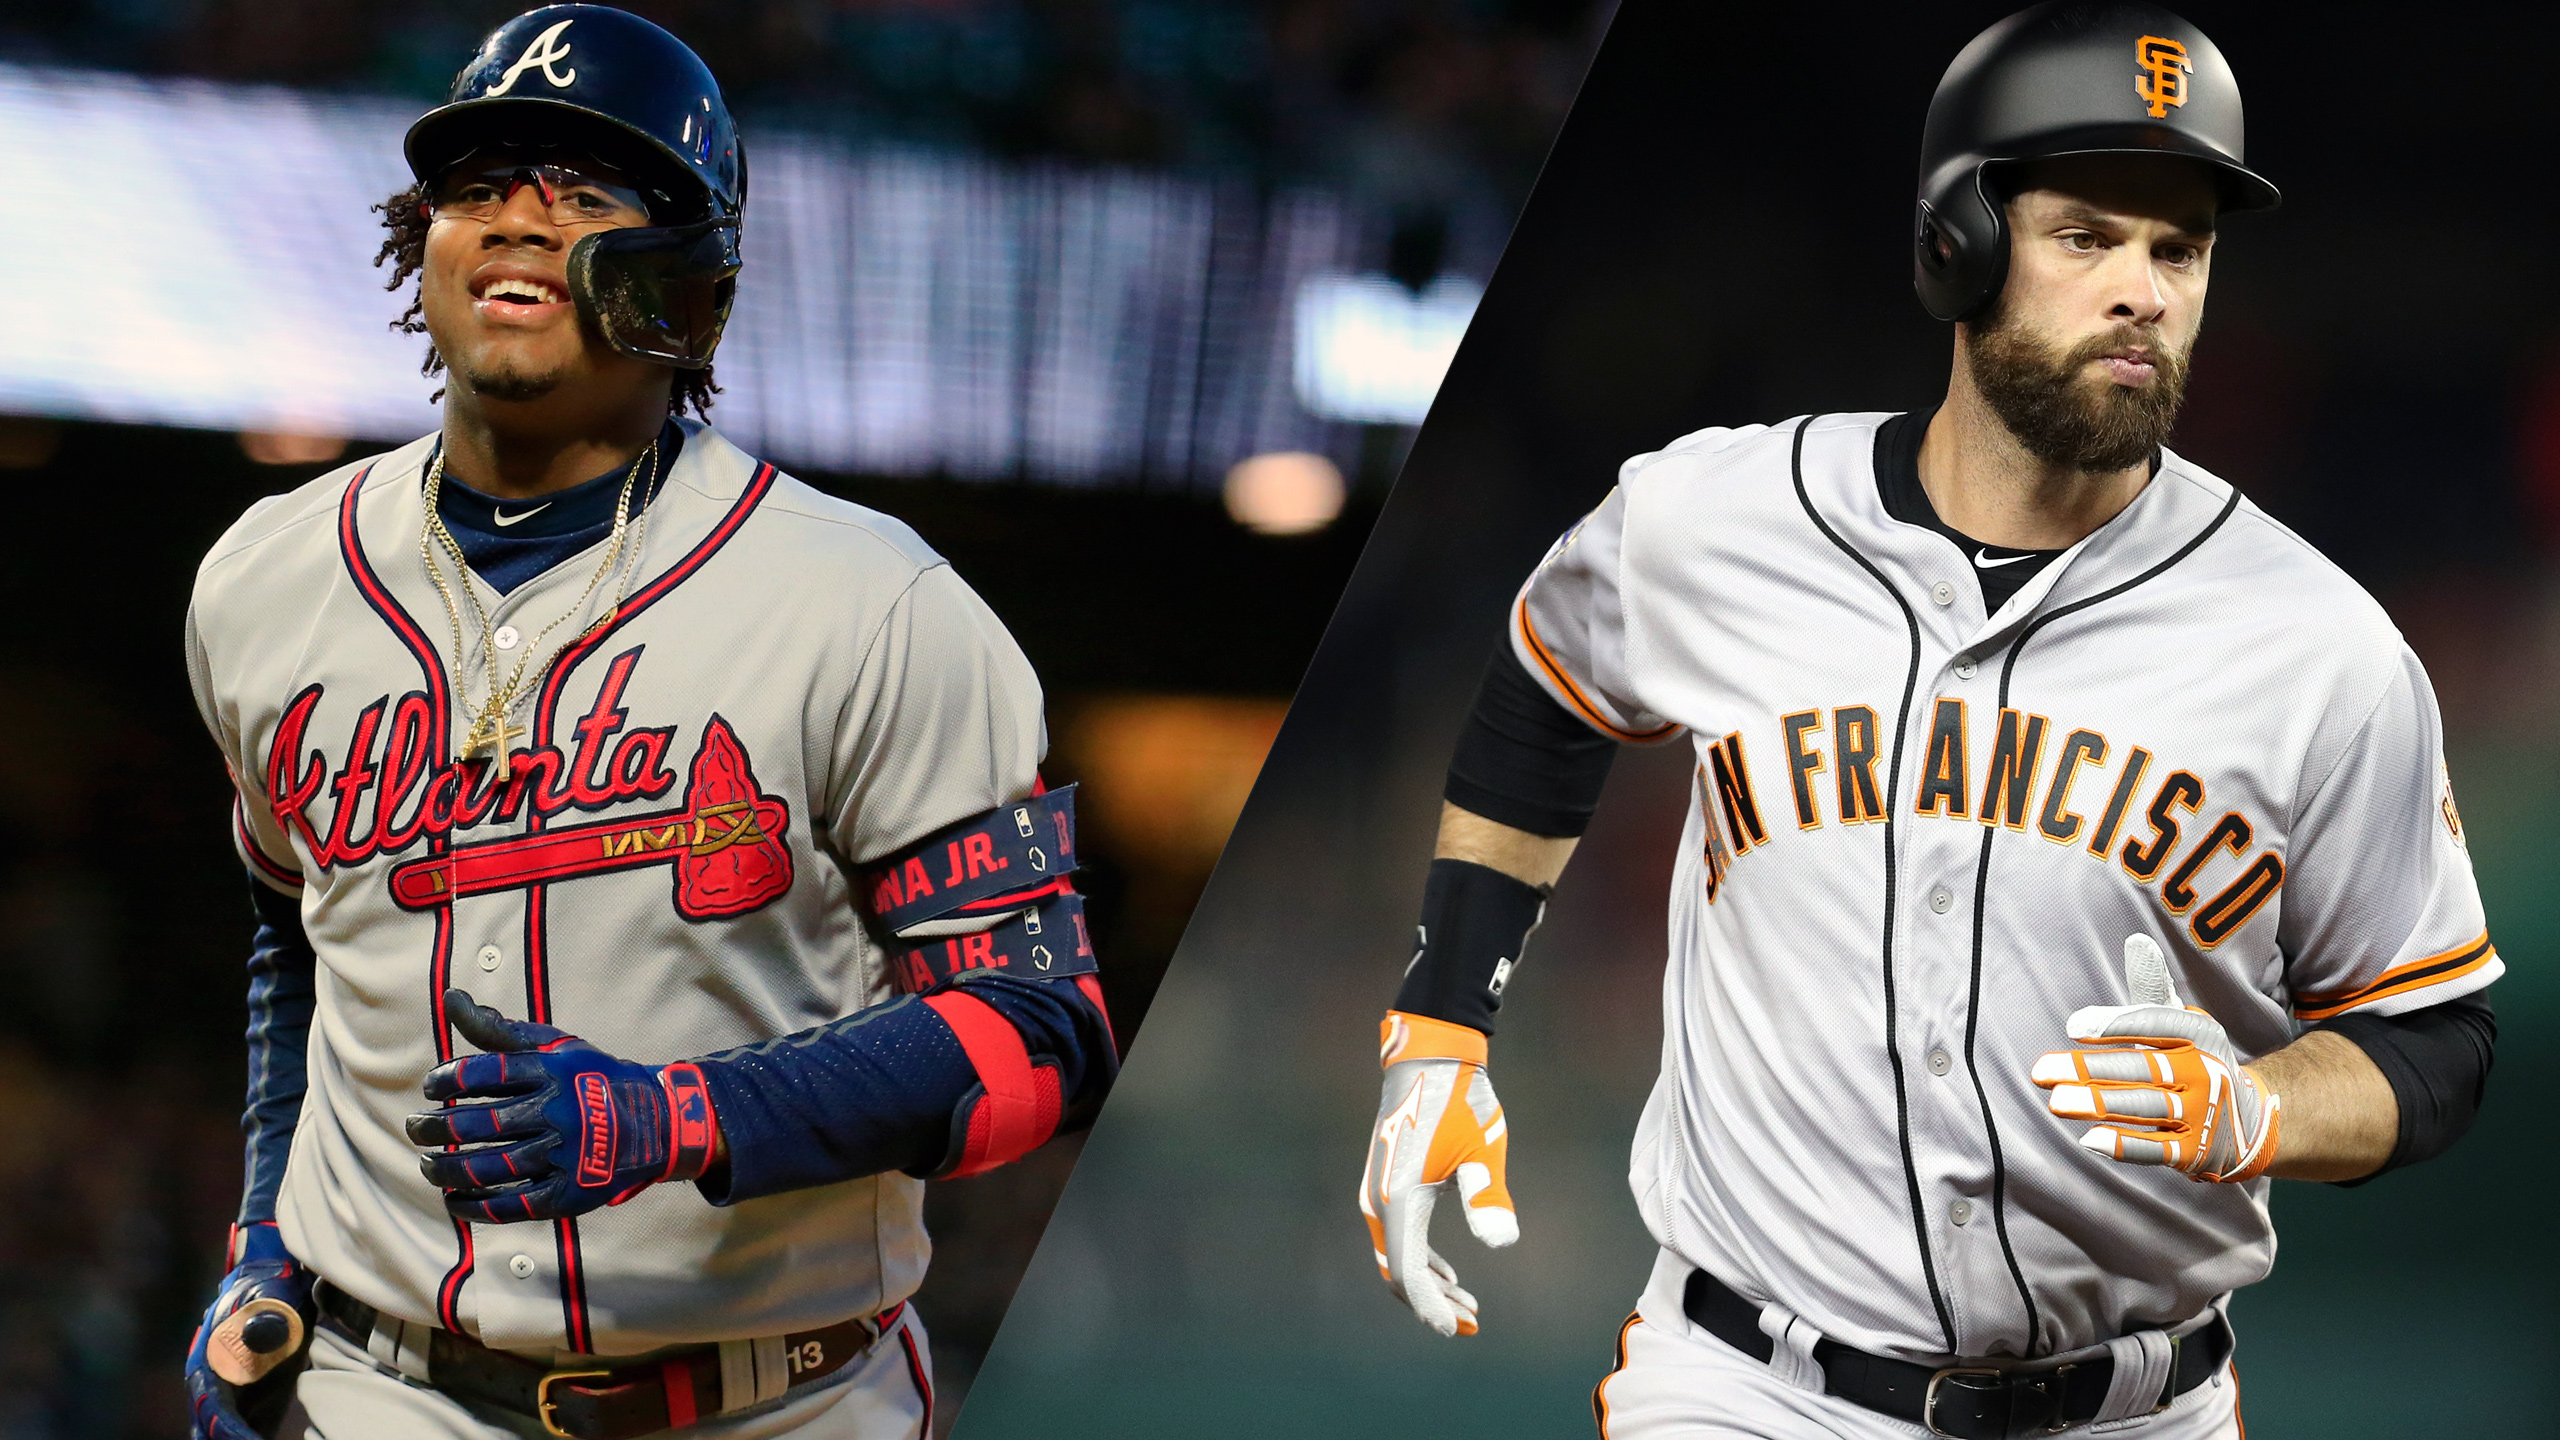 Atlanta Braves vs. San Francisco Giants (re-air)